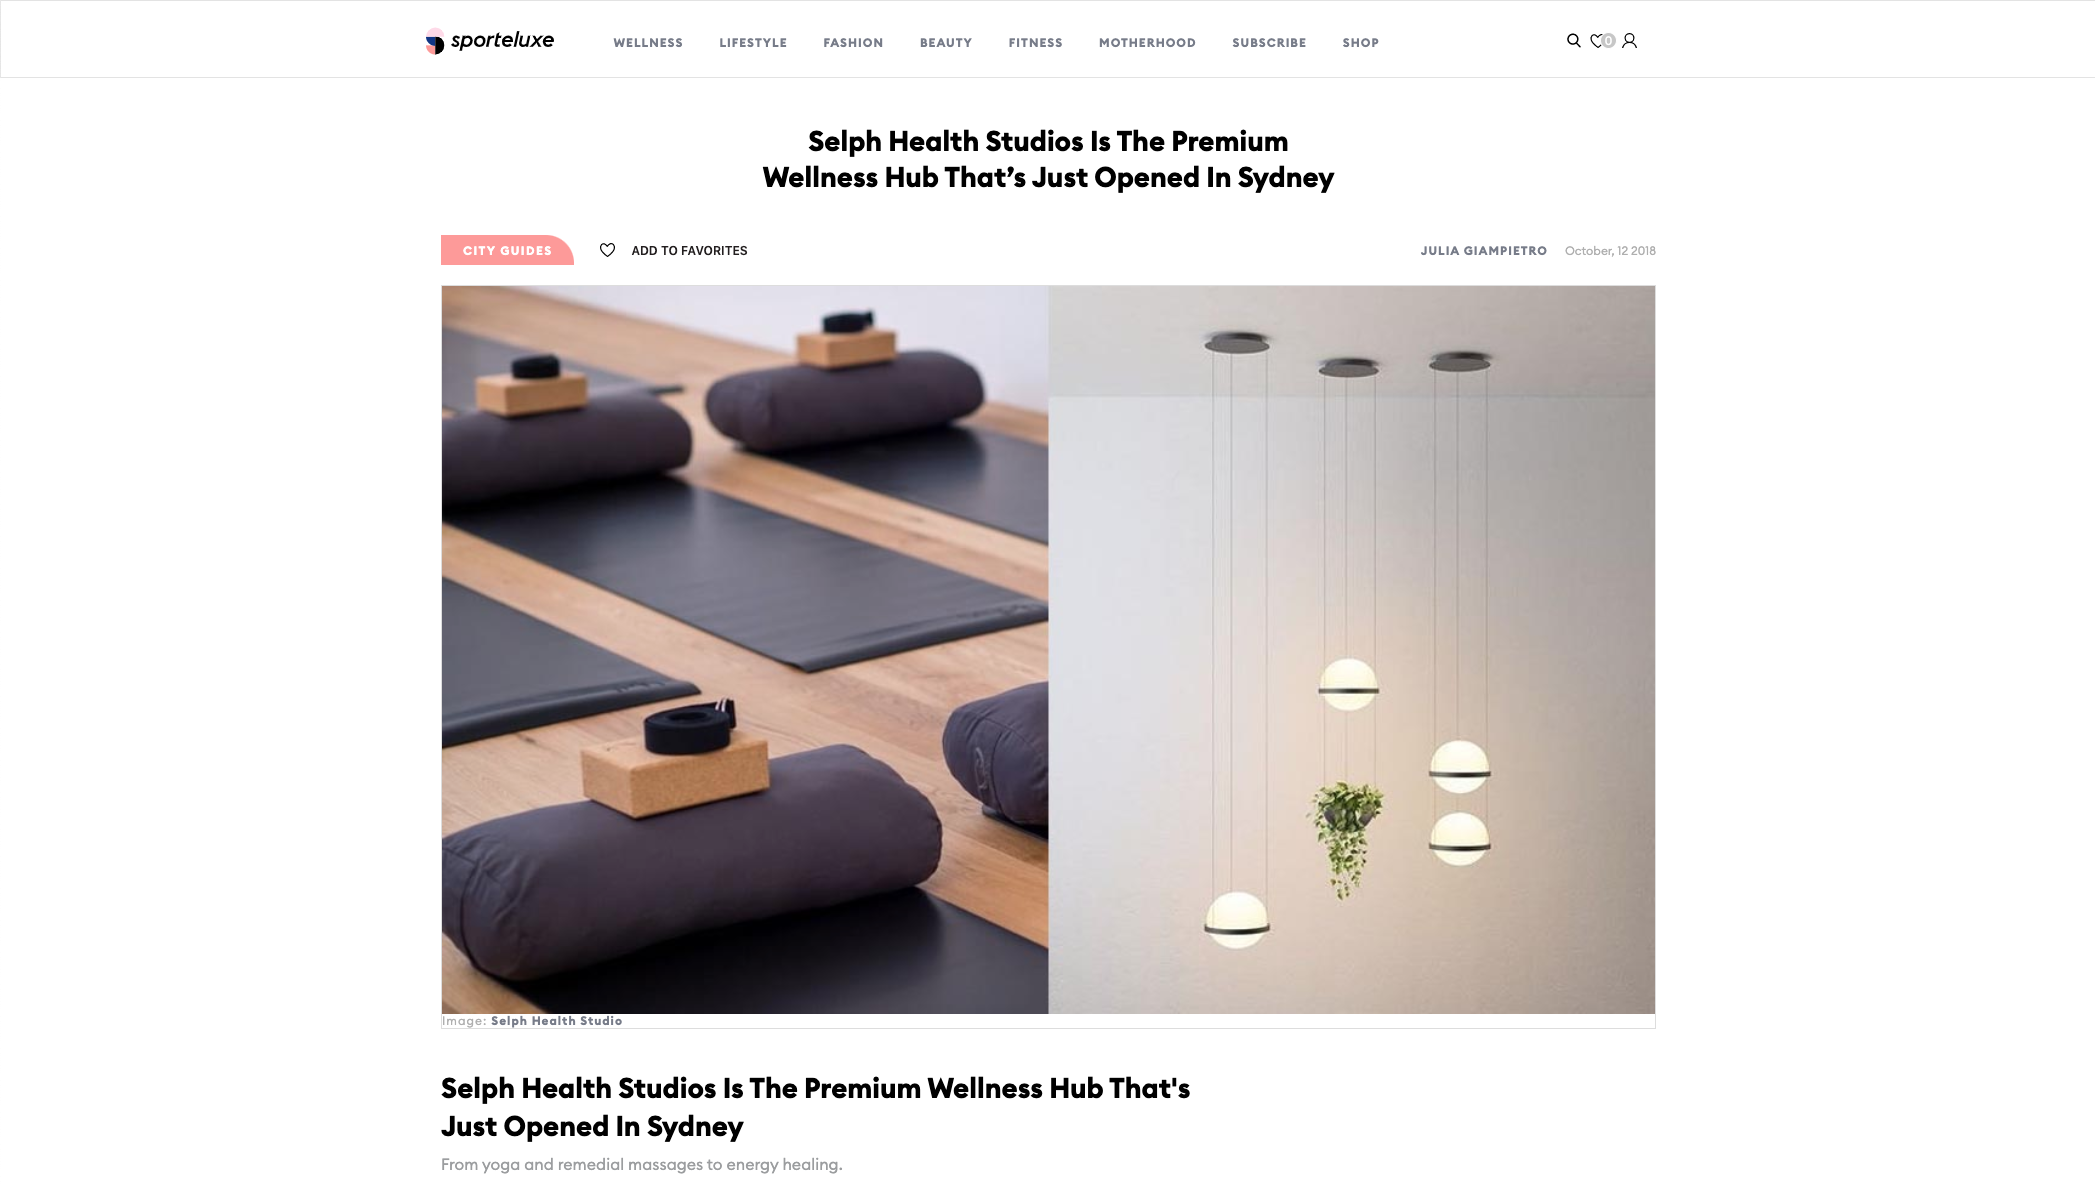 Selph Health Studios Is The Premium Wellness Hub That's Just Opened In Sydney